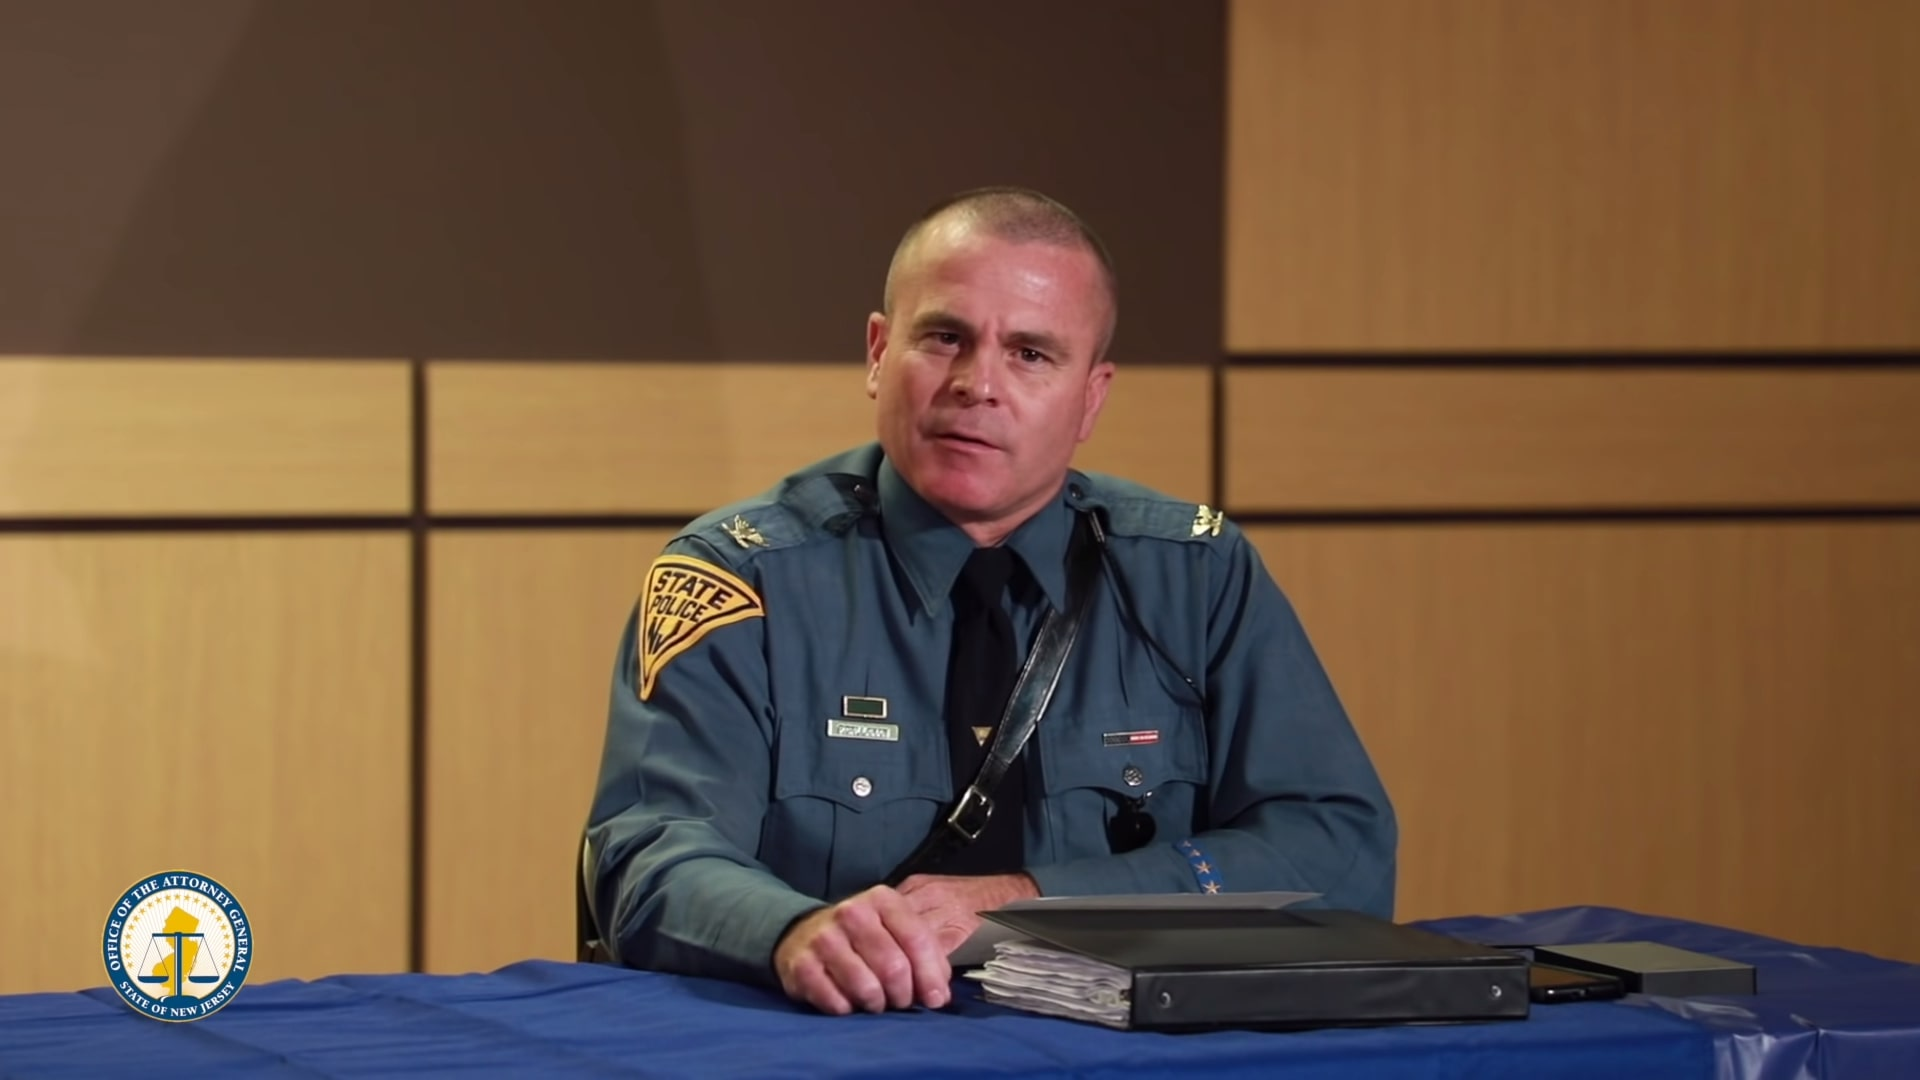 Top New Jersey State Cop Faces New Criticism Over Report on Diner Meeting